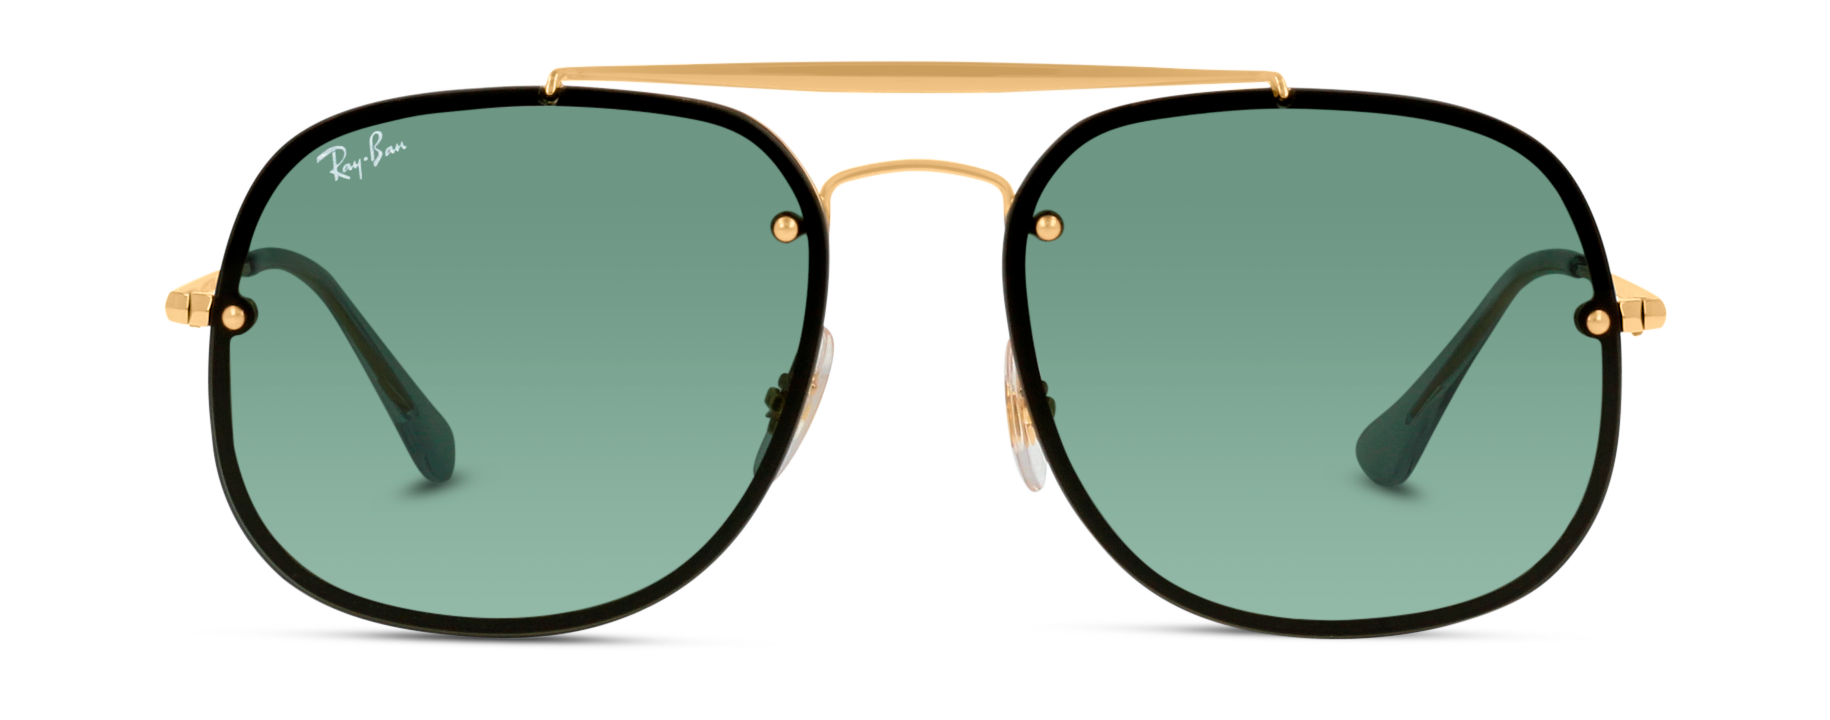 Front Ray-Ban Ray-Ban 0RB3583N 905071 58/16 Goud/Groen